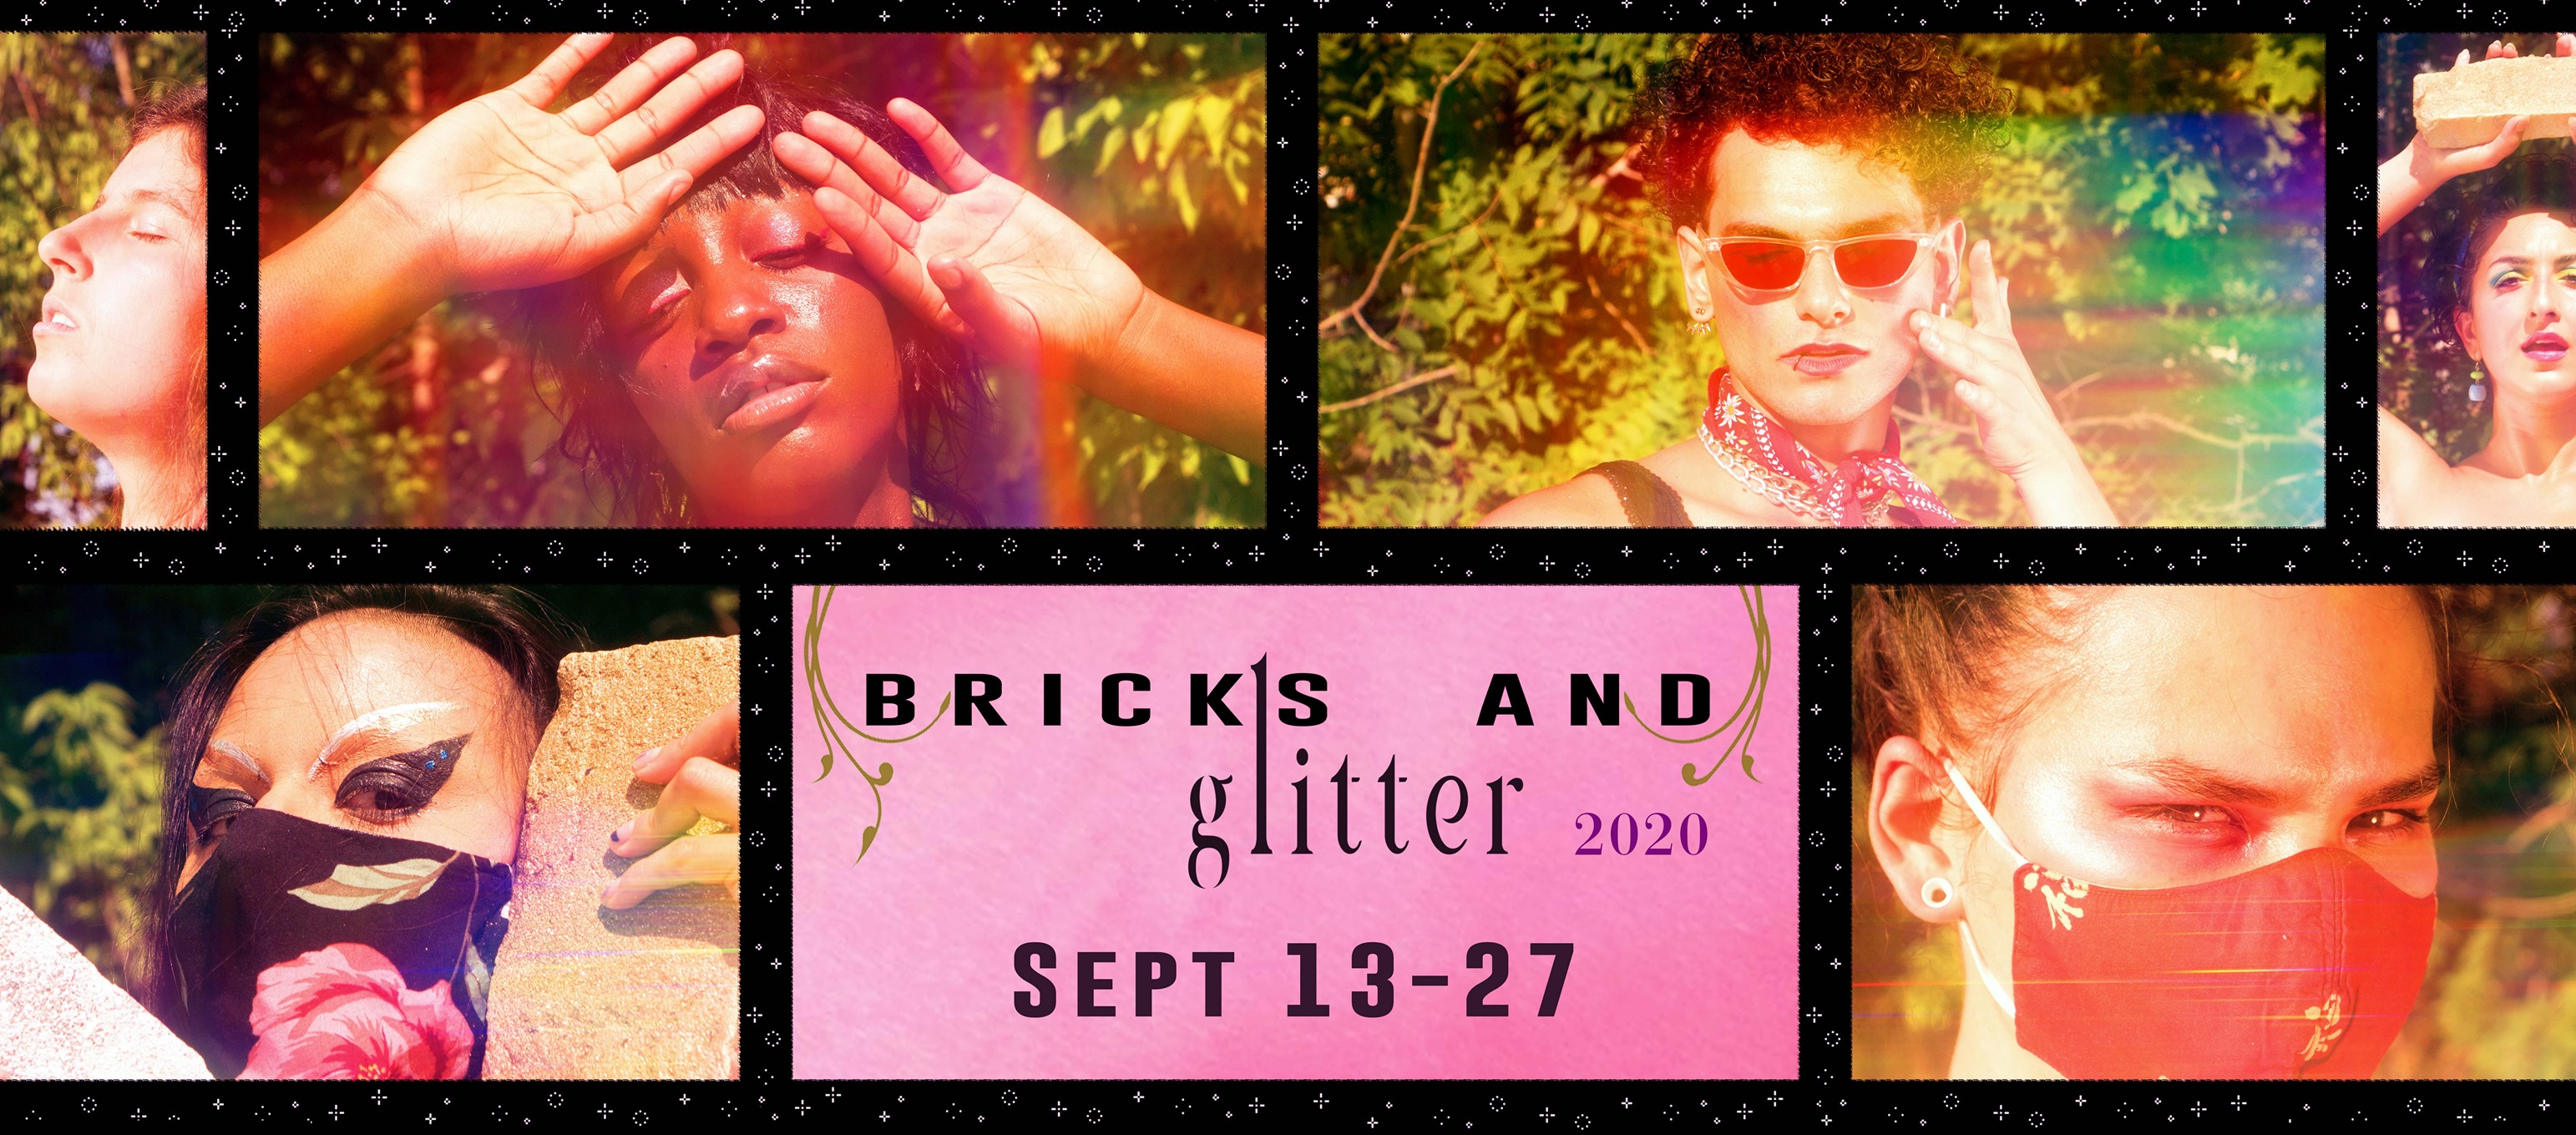 QueerEvents.ca - festival listing - bricks and glitter 2020 banner